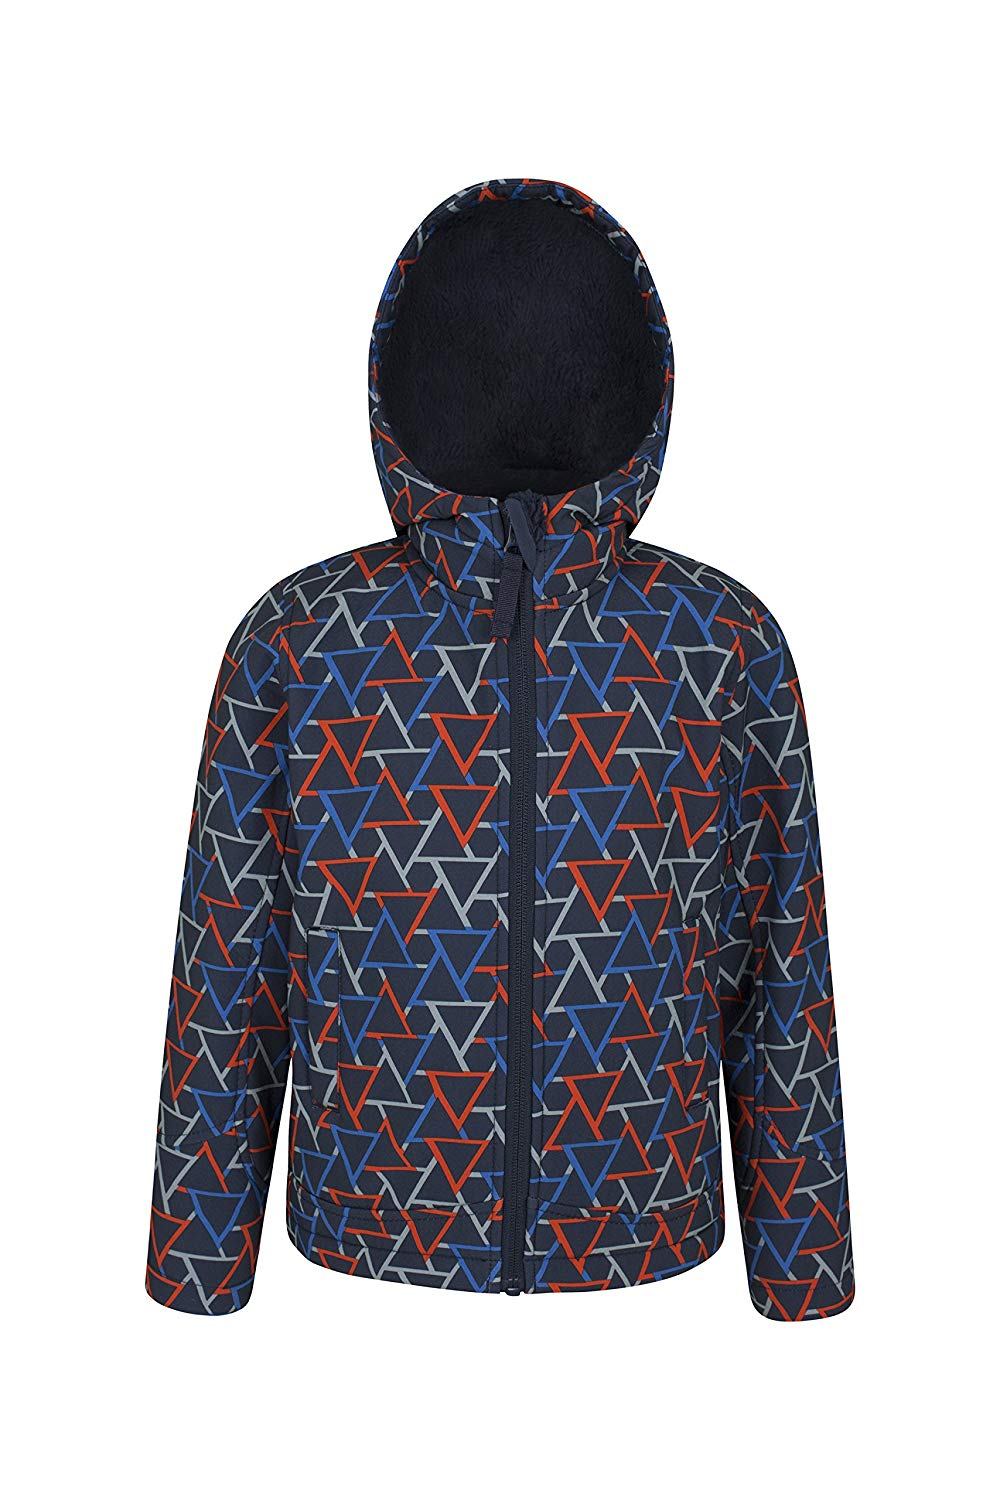 cba6a31ed979 Get Quotations · Mountain Warehouse Arctic Printed Kids Softshell Jacket